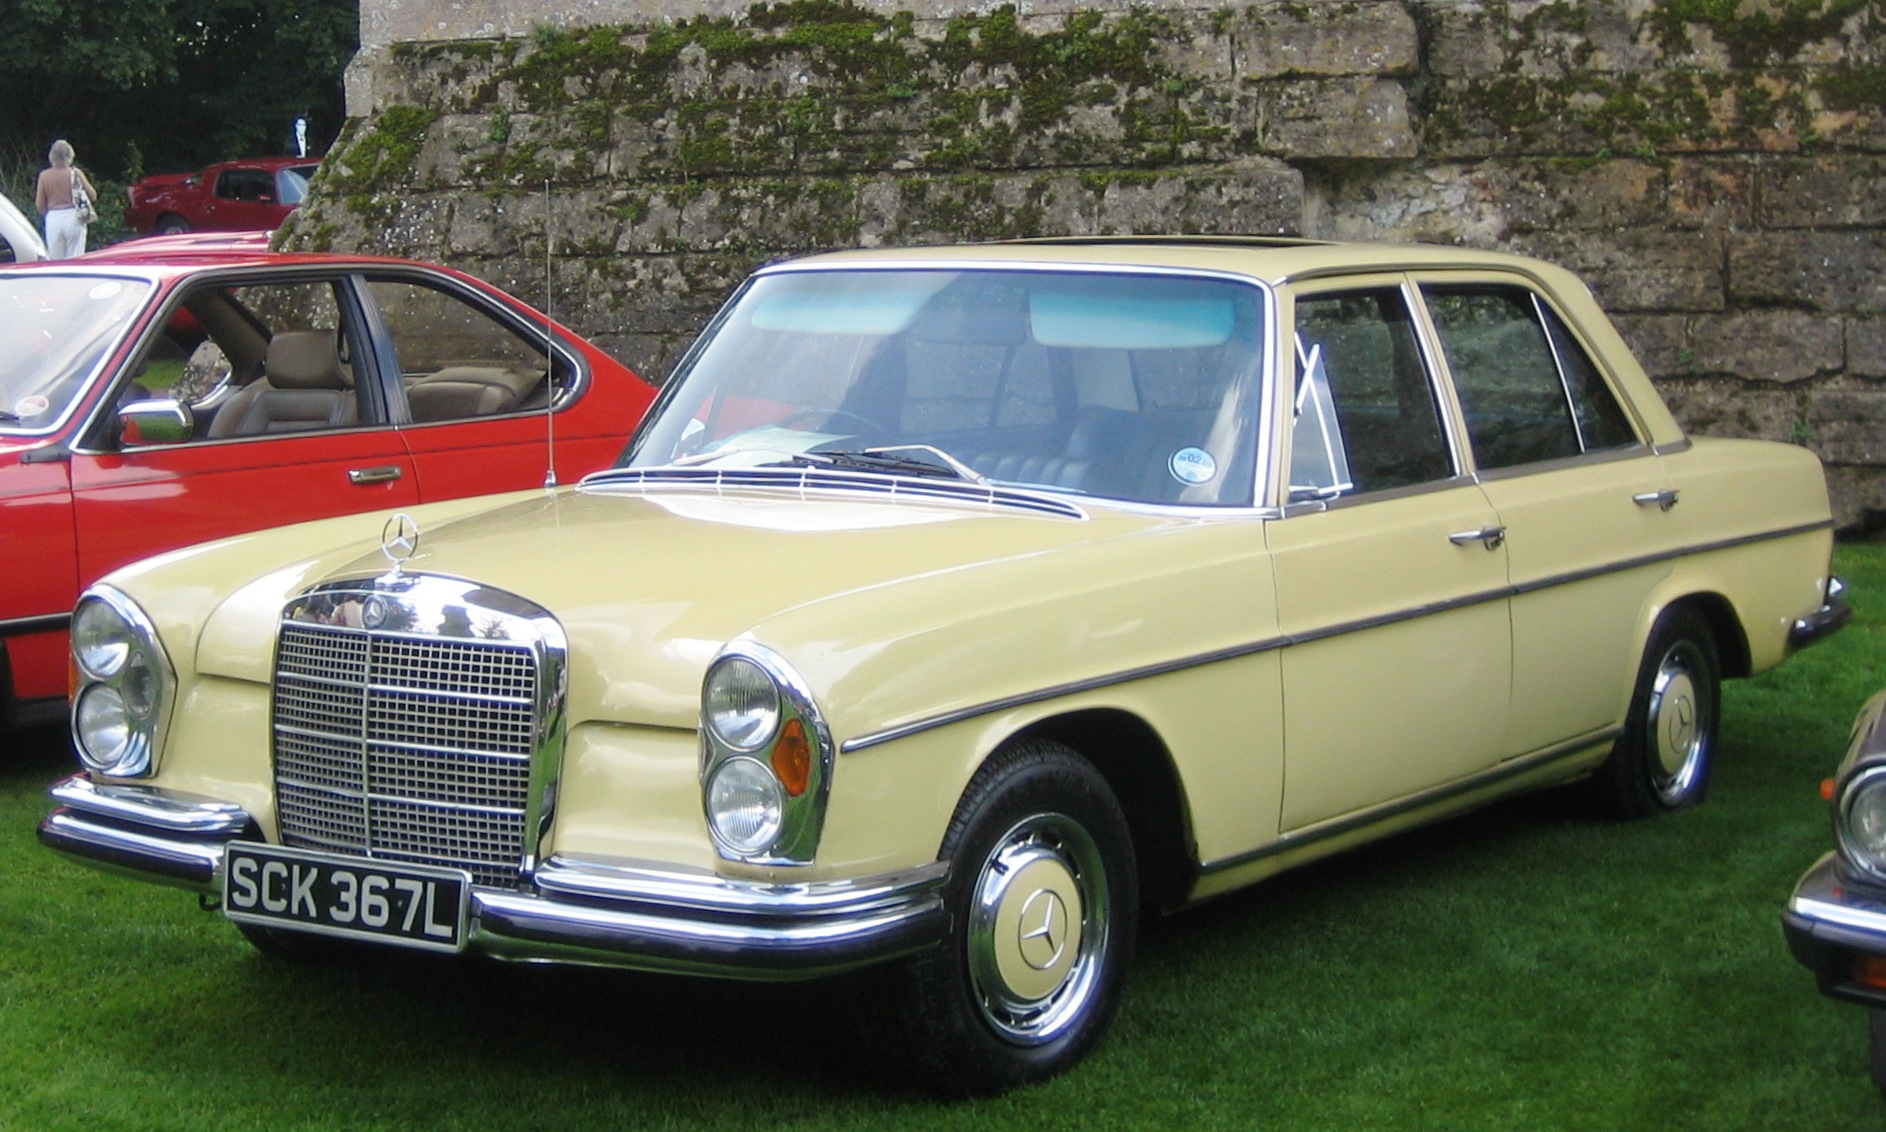 1971 Mercedes Benz 280 Carsaddiction Com